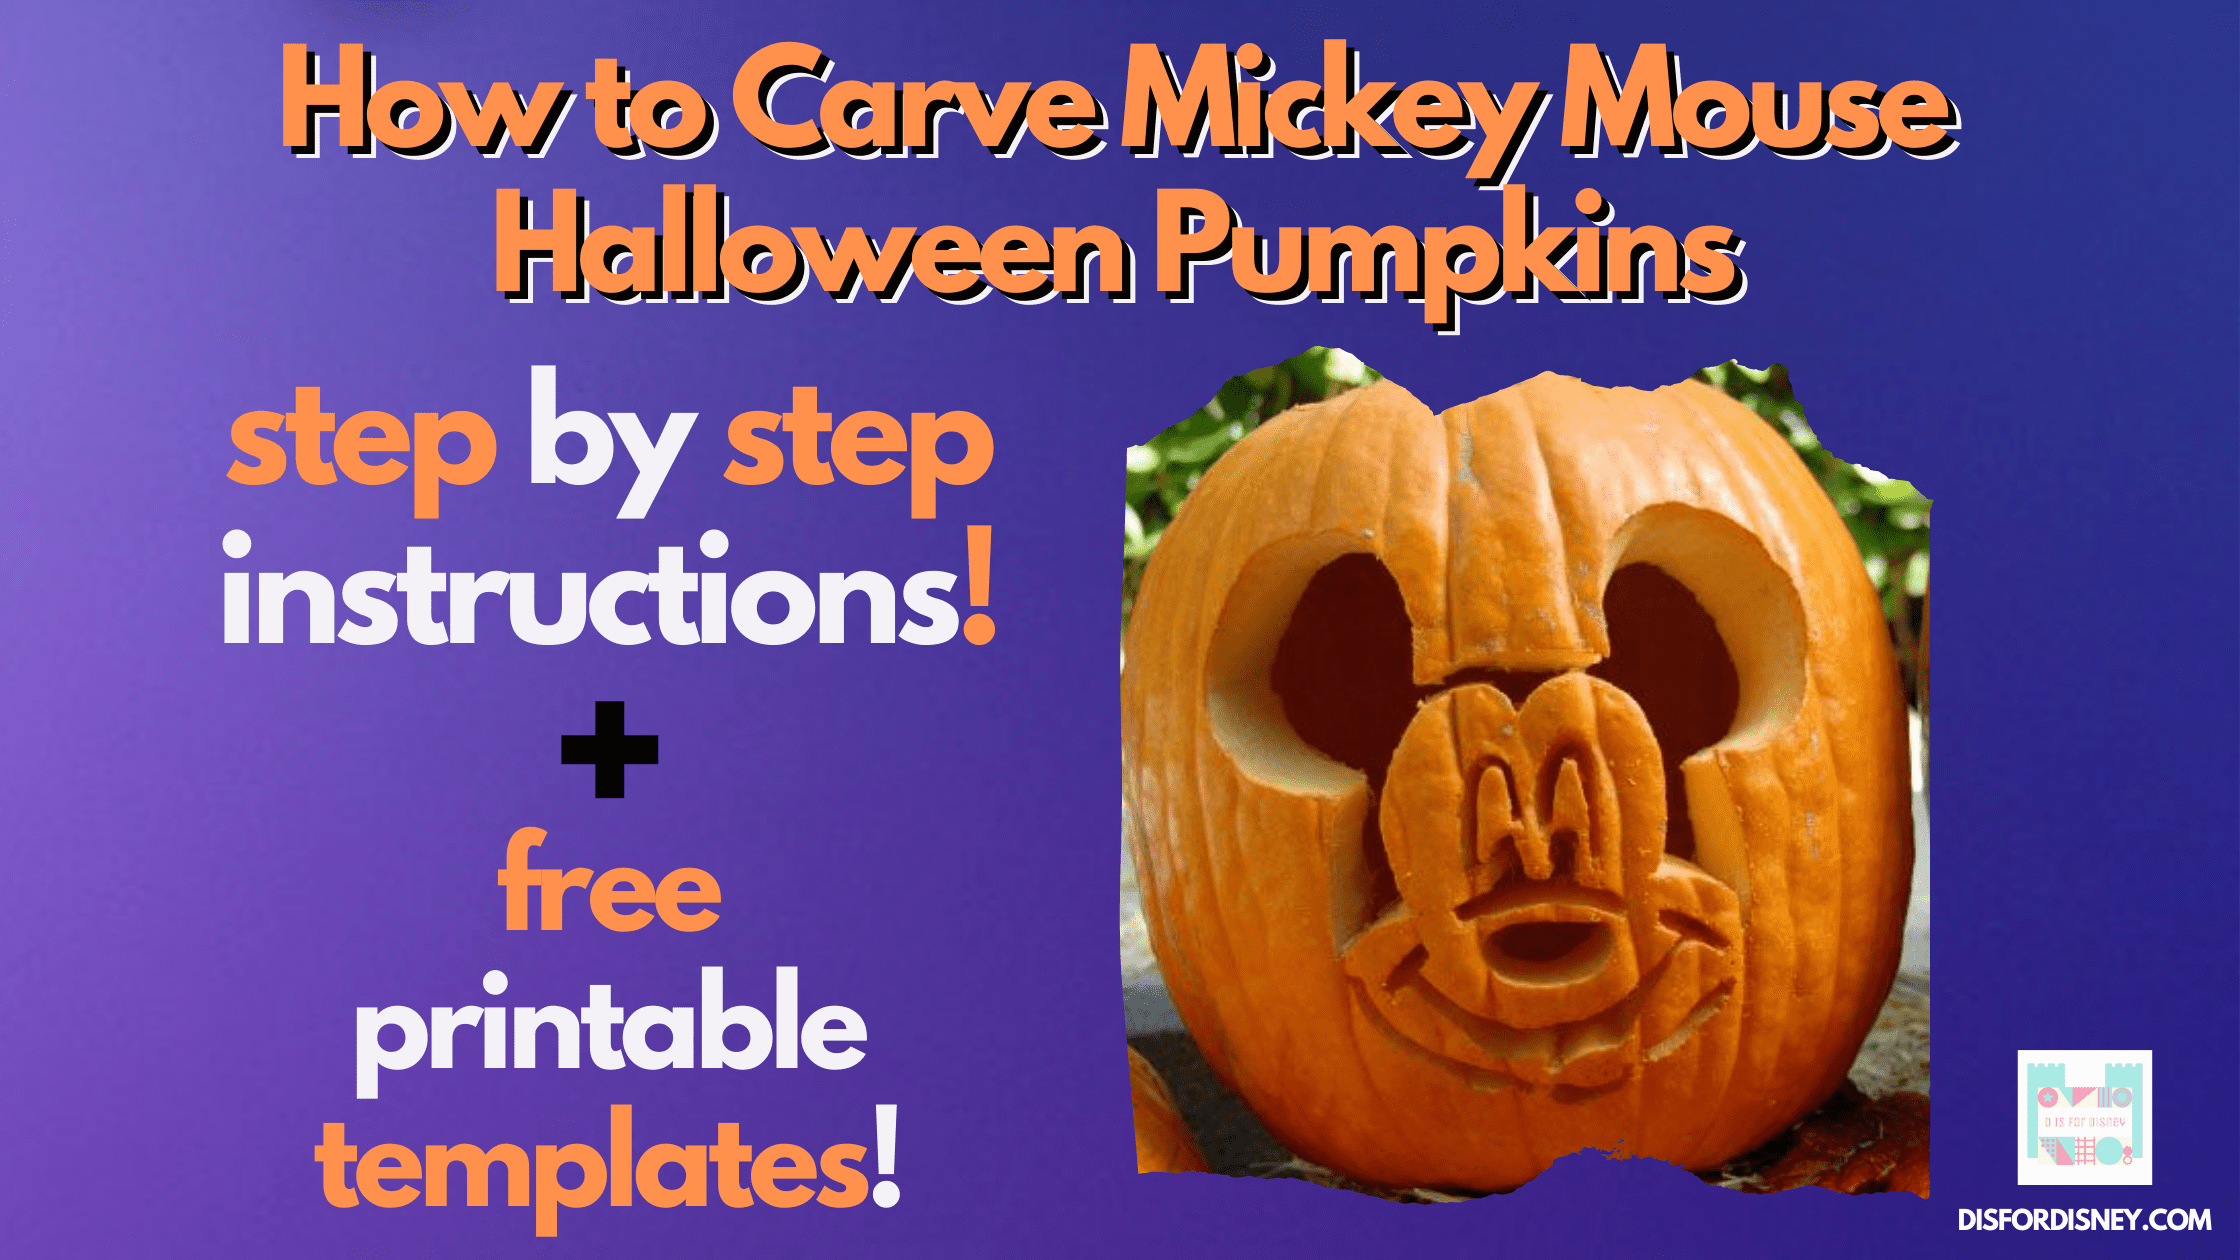 How to Carve Mickey Mouse Halloween Pumpkins